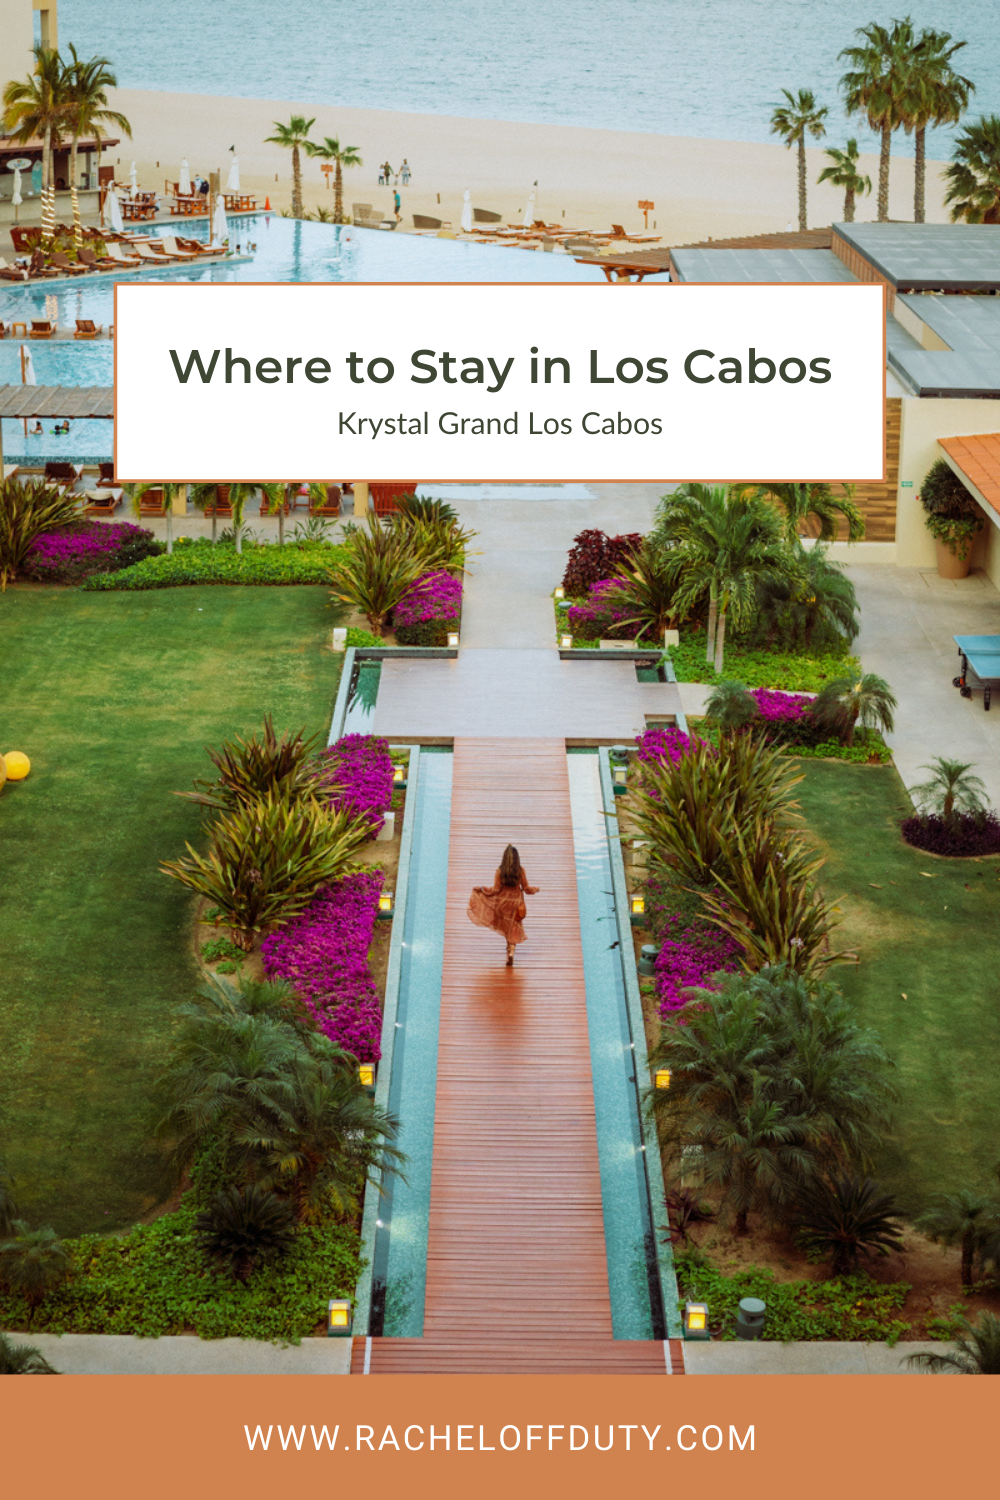 """Rachel Off Duty: Where to Stay in Los Cabos"""" width="""